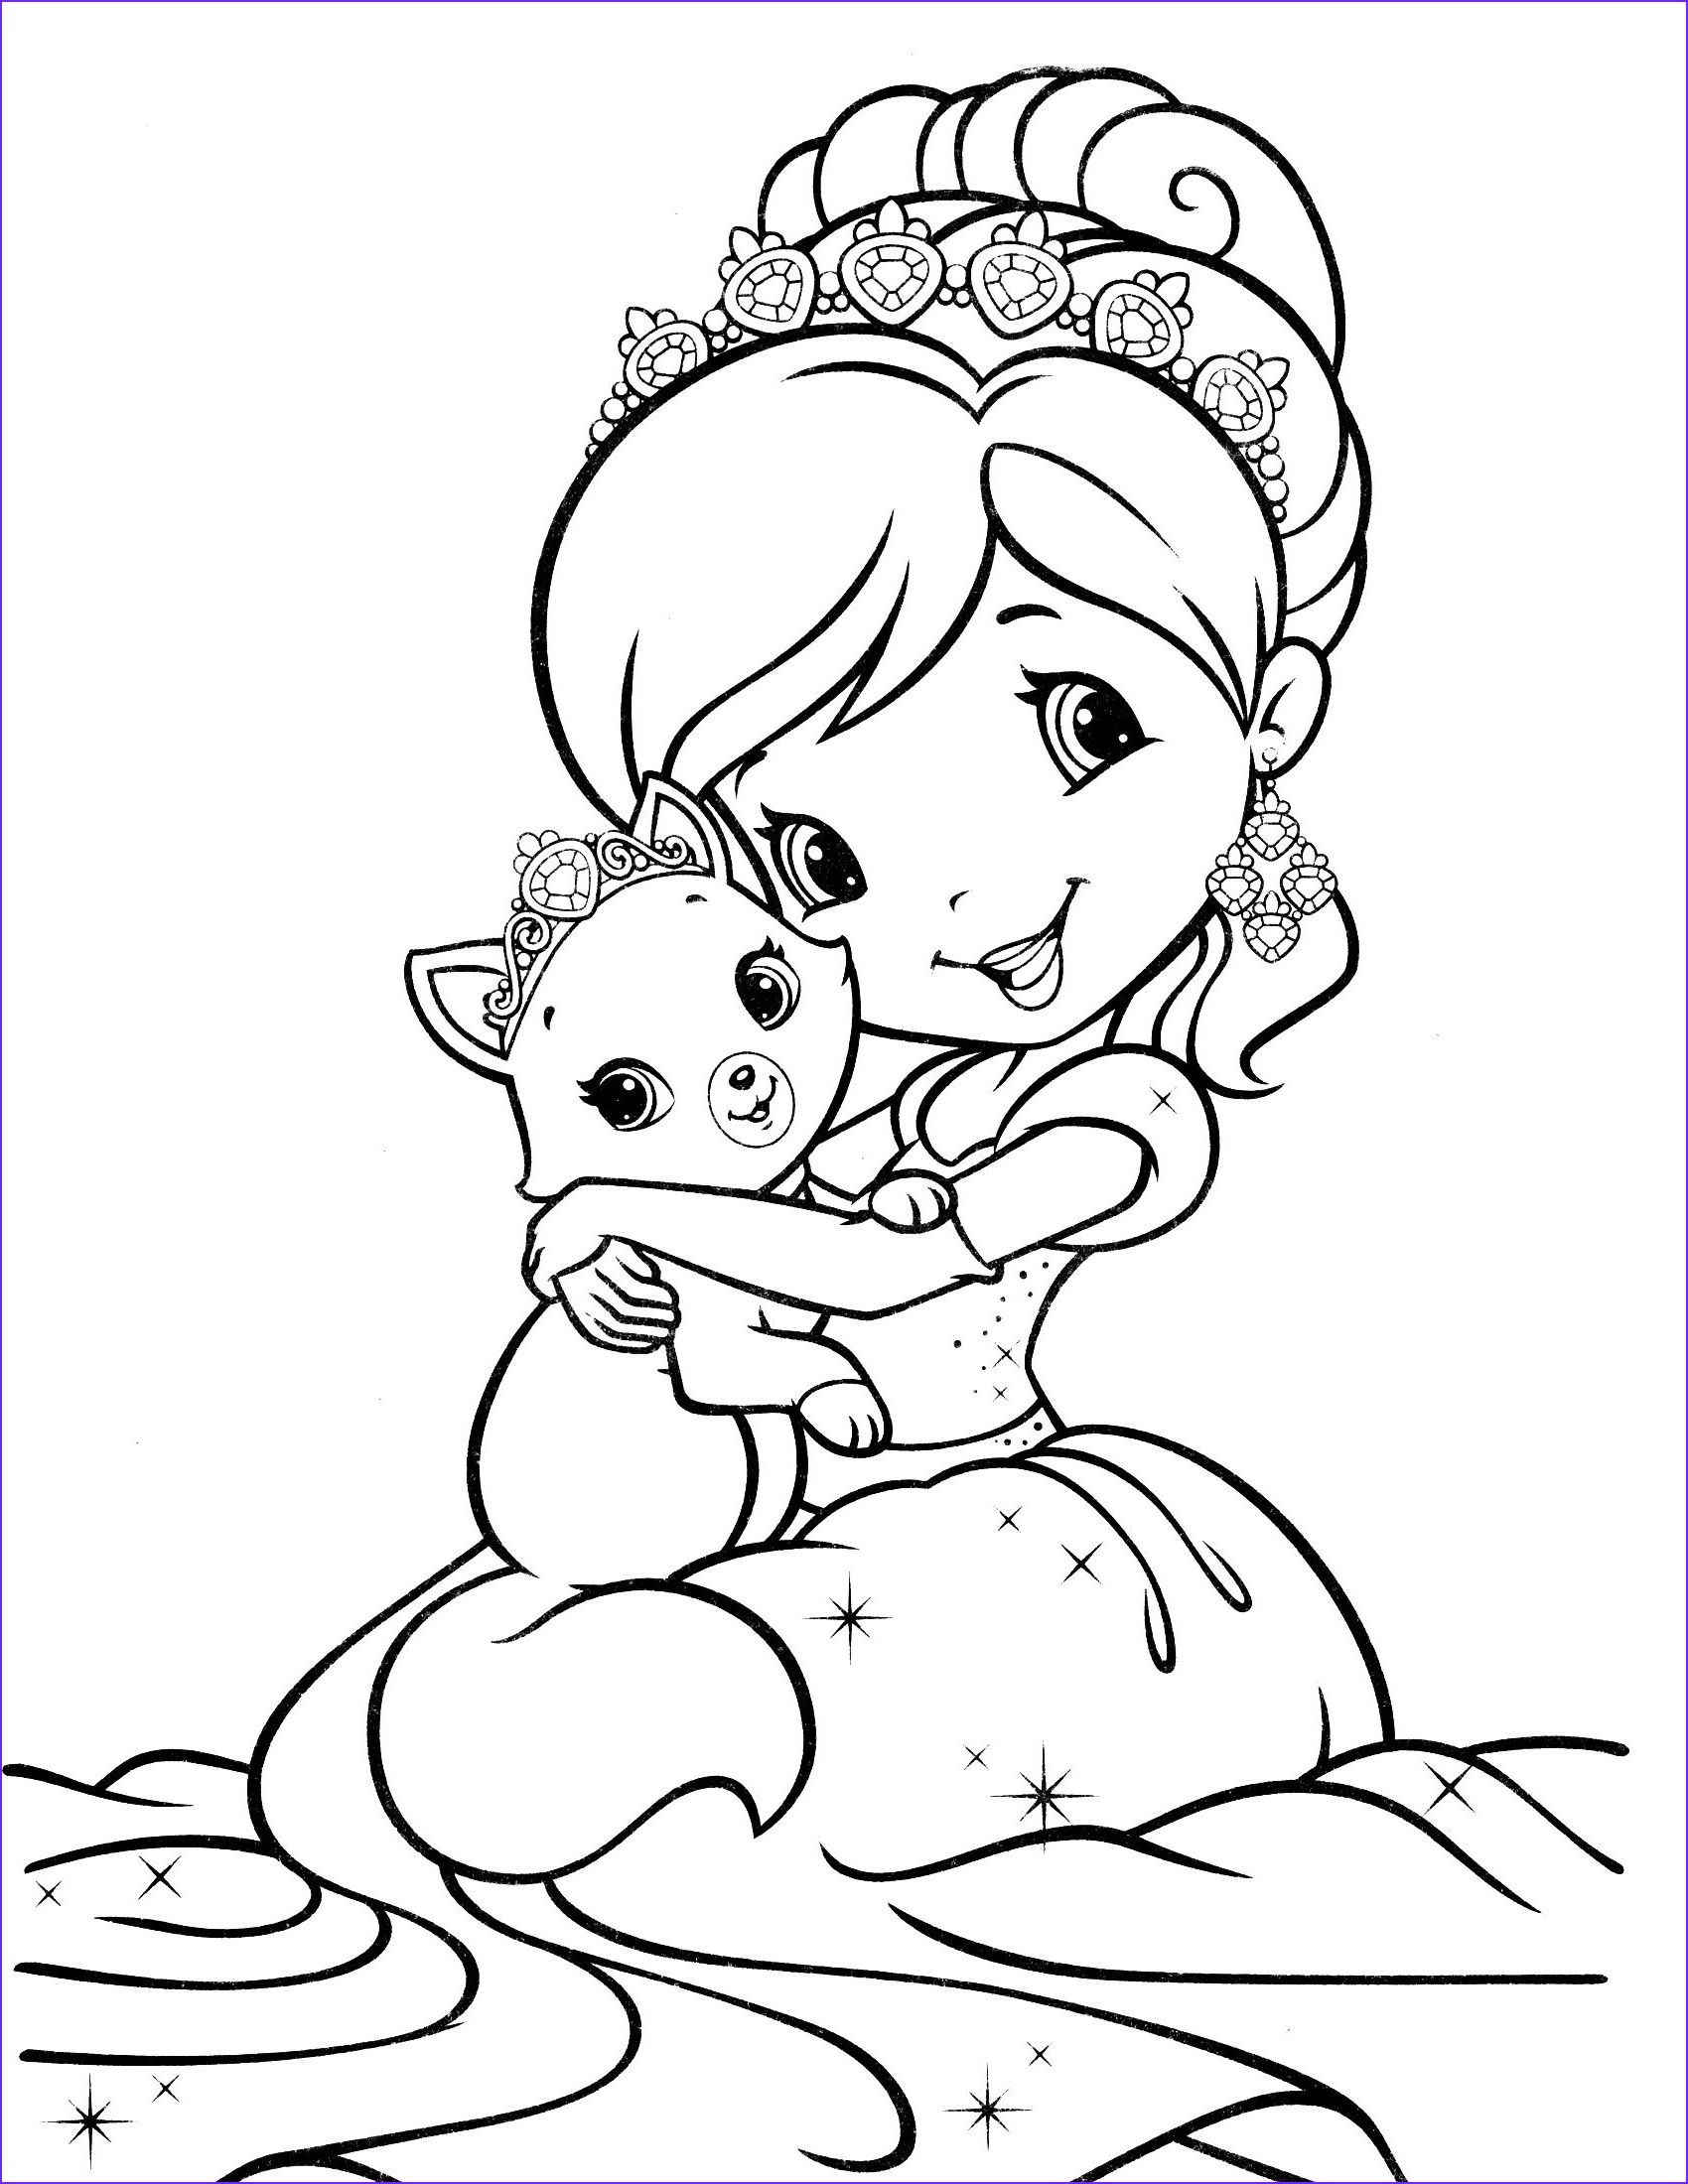 13 Best Of Strawberry Shortcake Coloring Page Collection